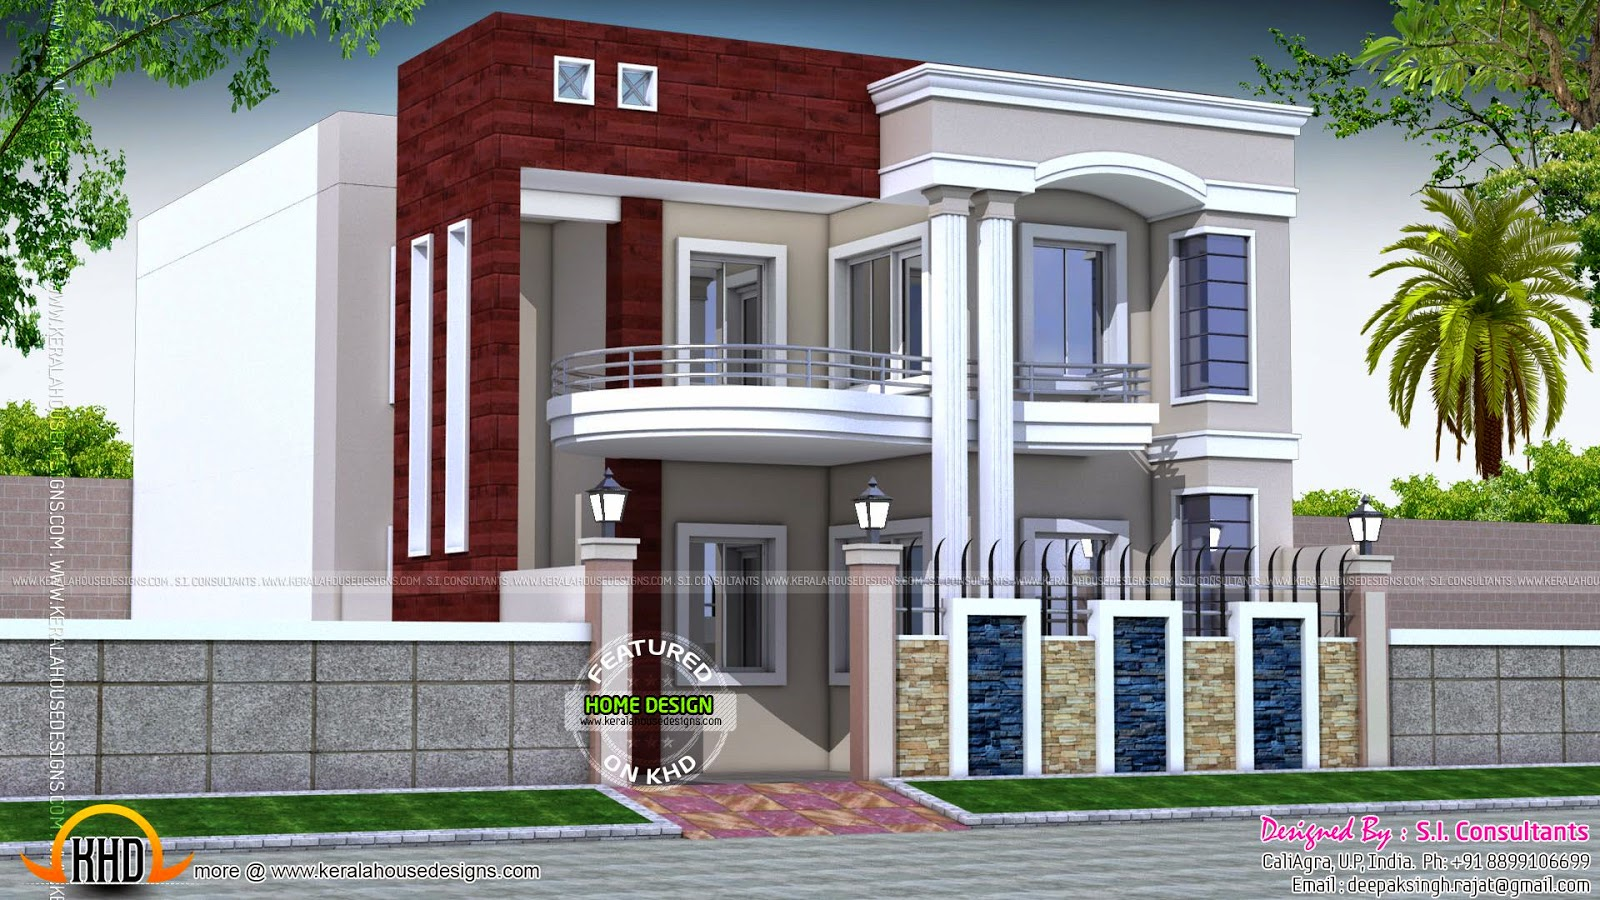 House design in north india kerala home design and floor for House building plans in india